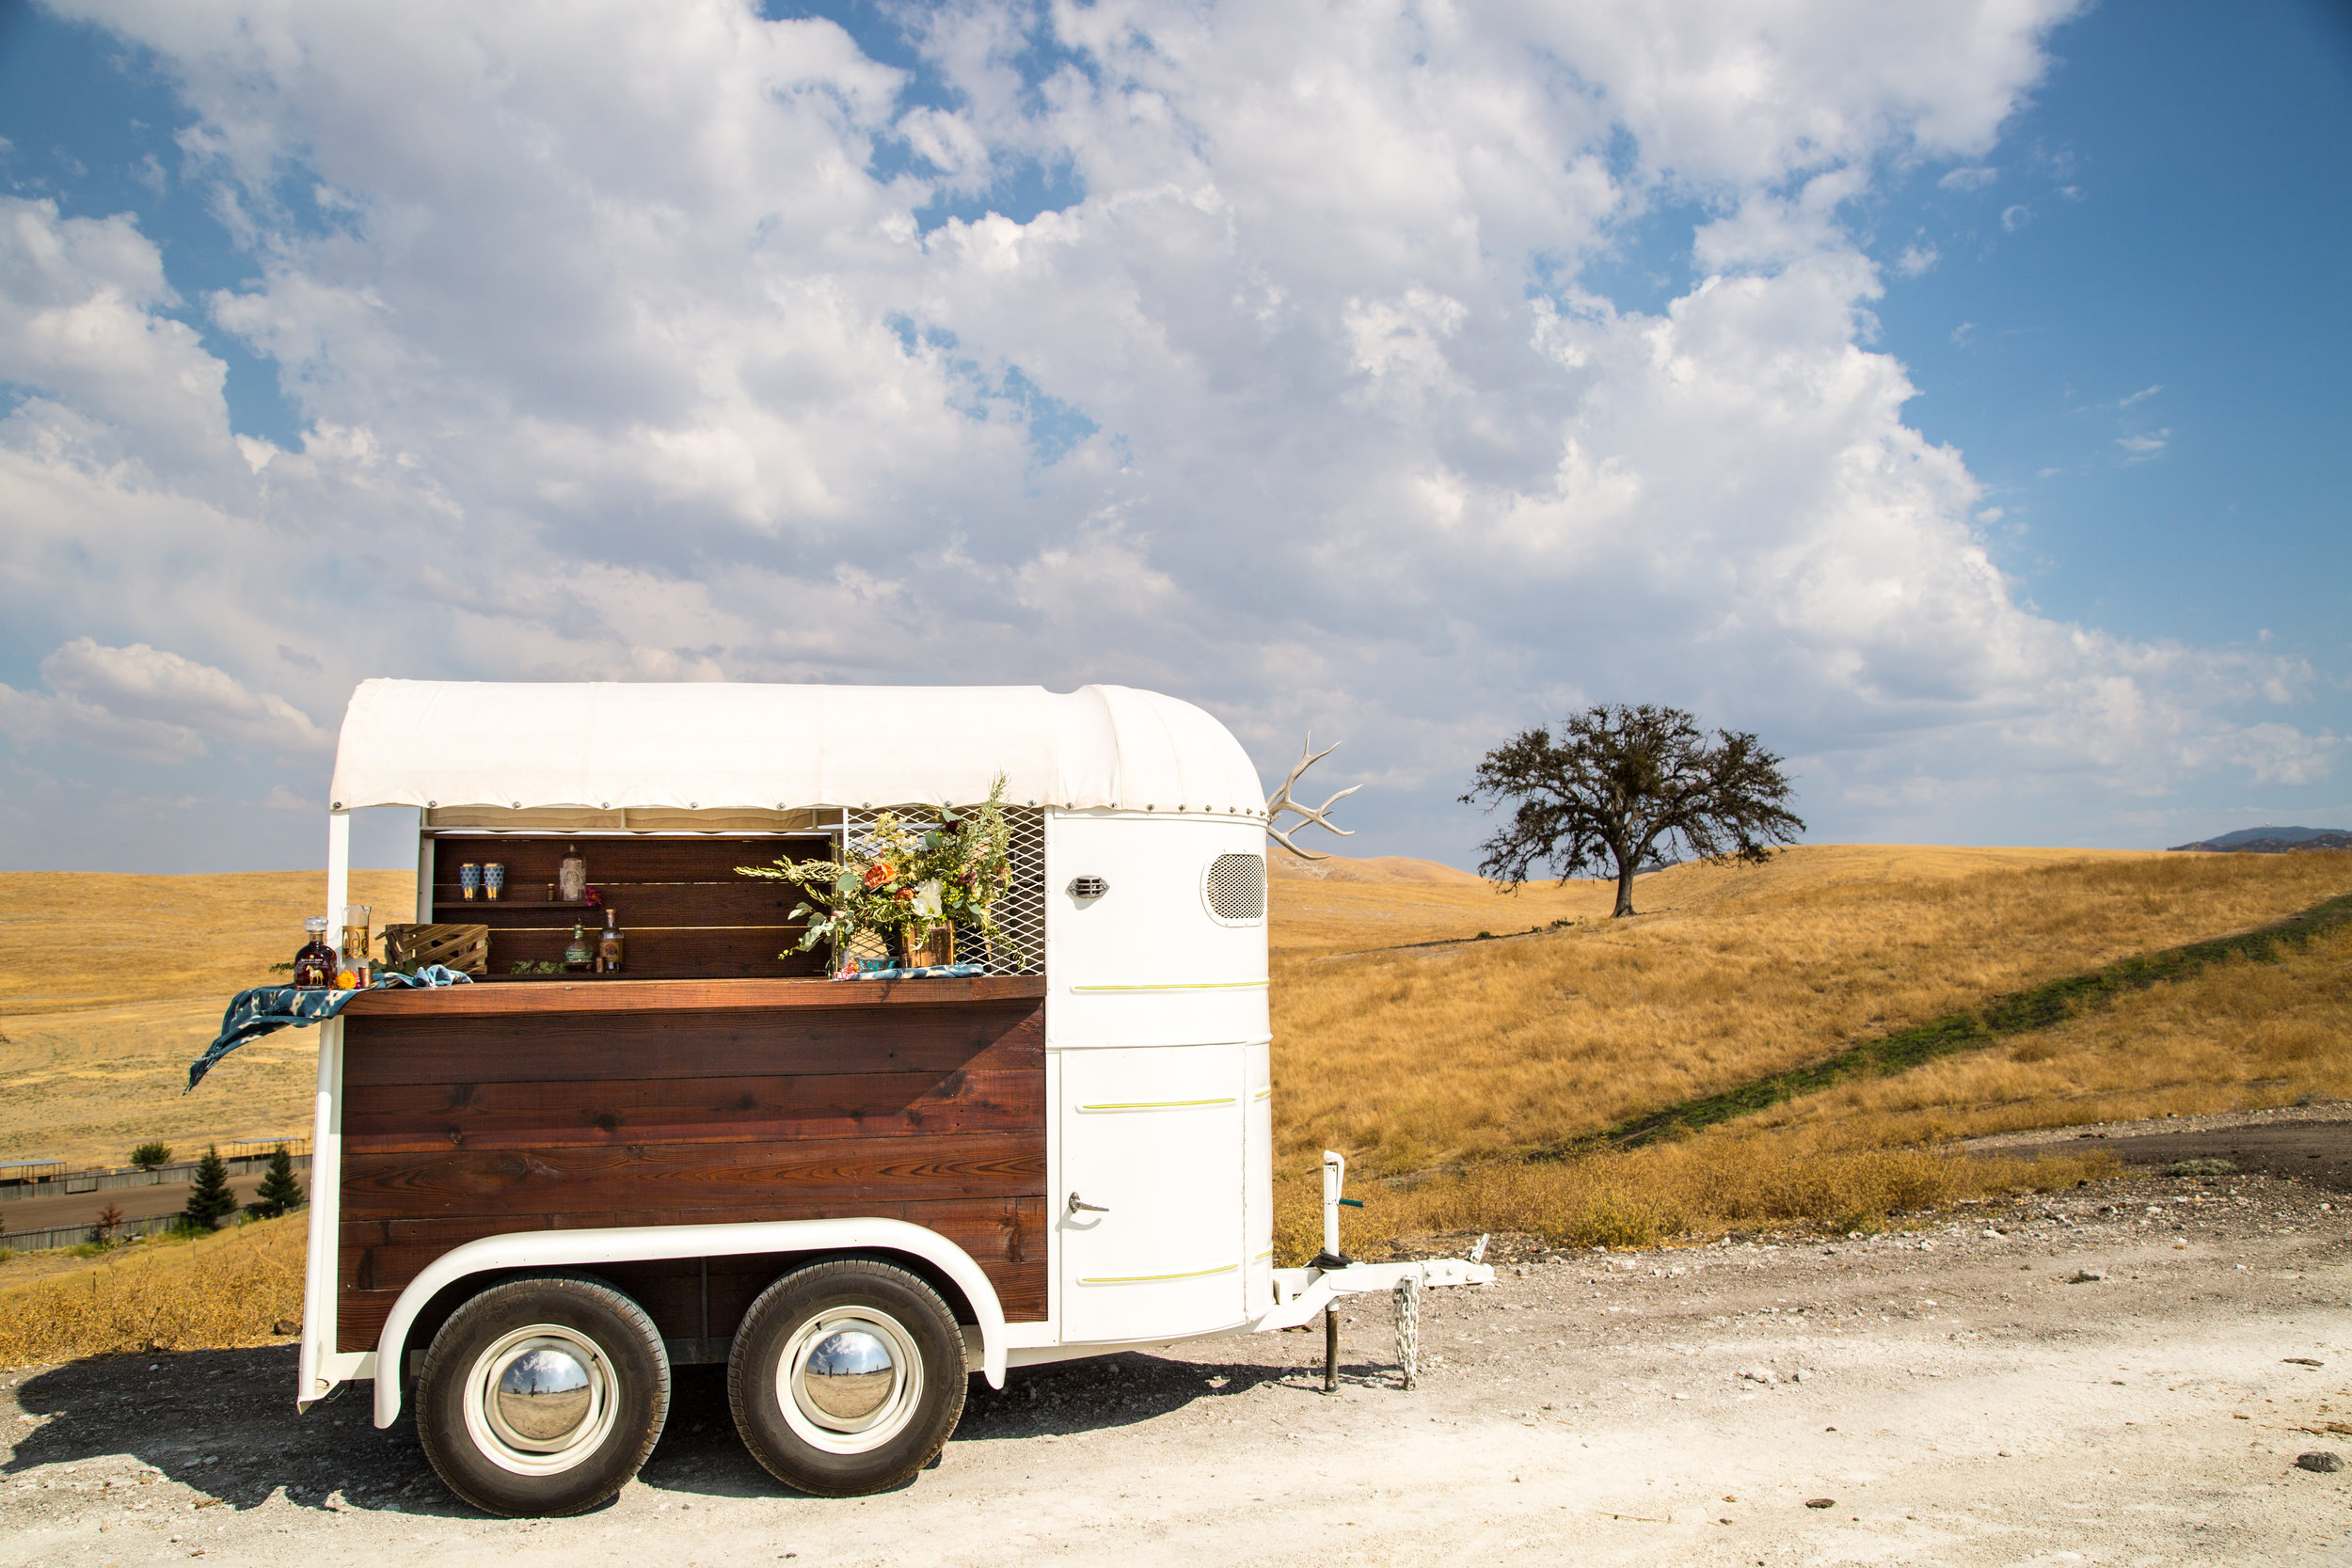 Our 1948 horse trailer bar makes every event more fun! This bar and vending trailer can also be  customized with your company's branding and a styled lounge to create the perfect experiential marketing experience!